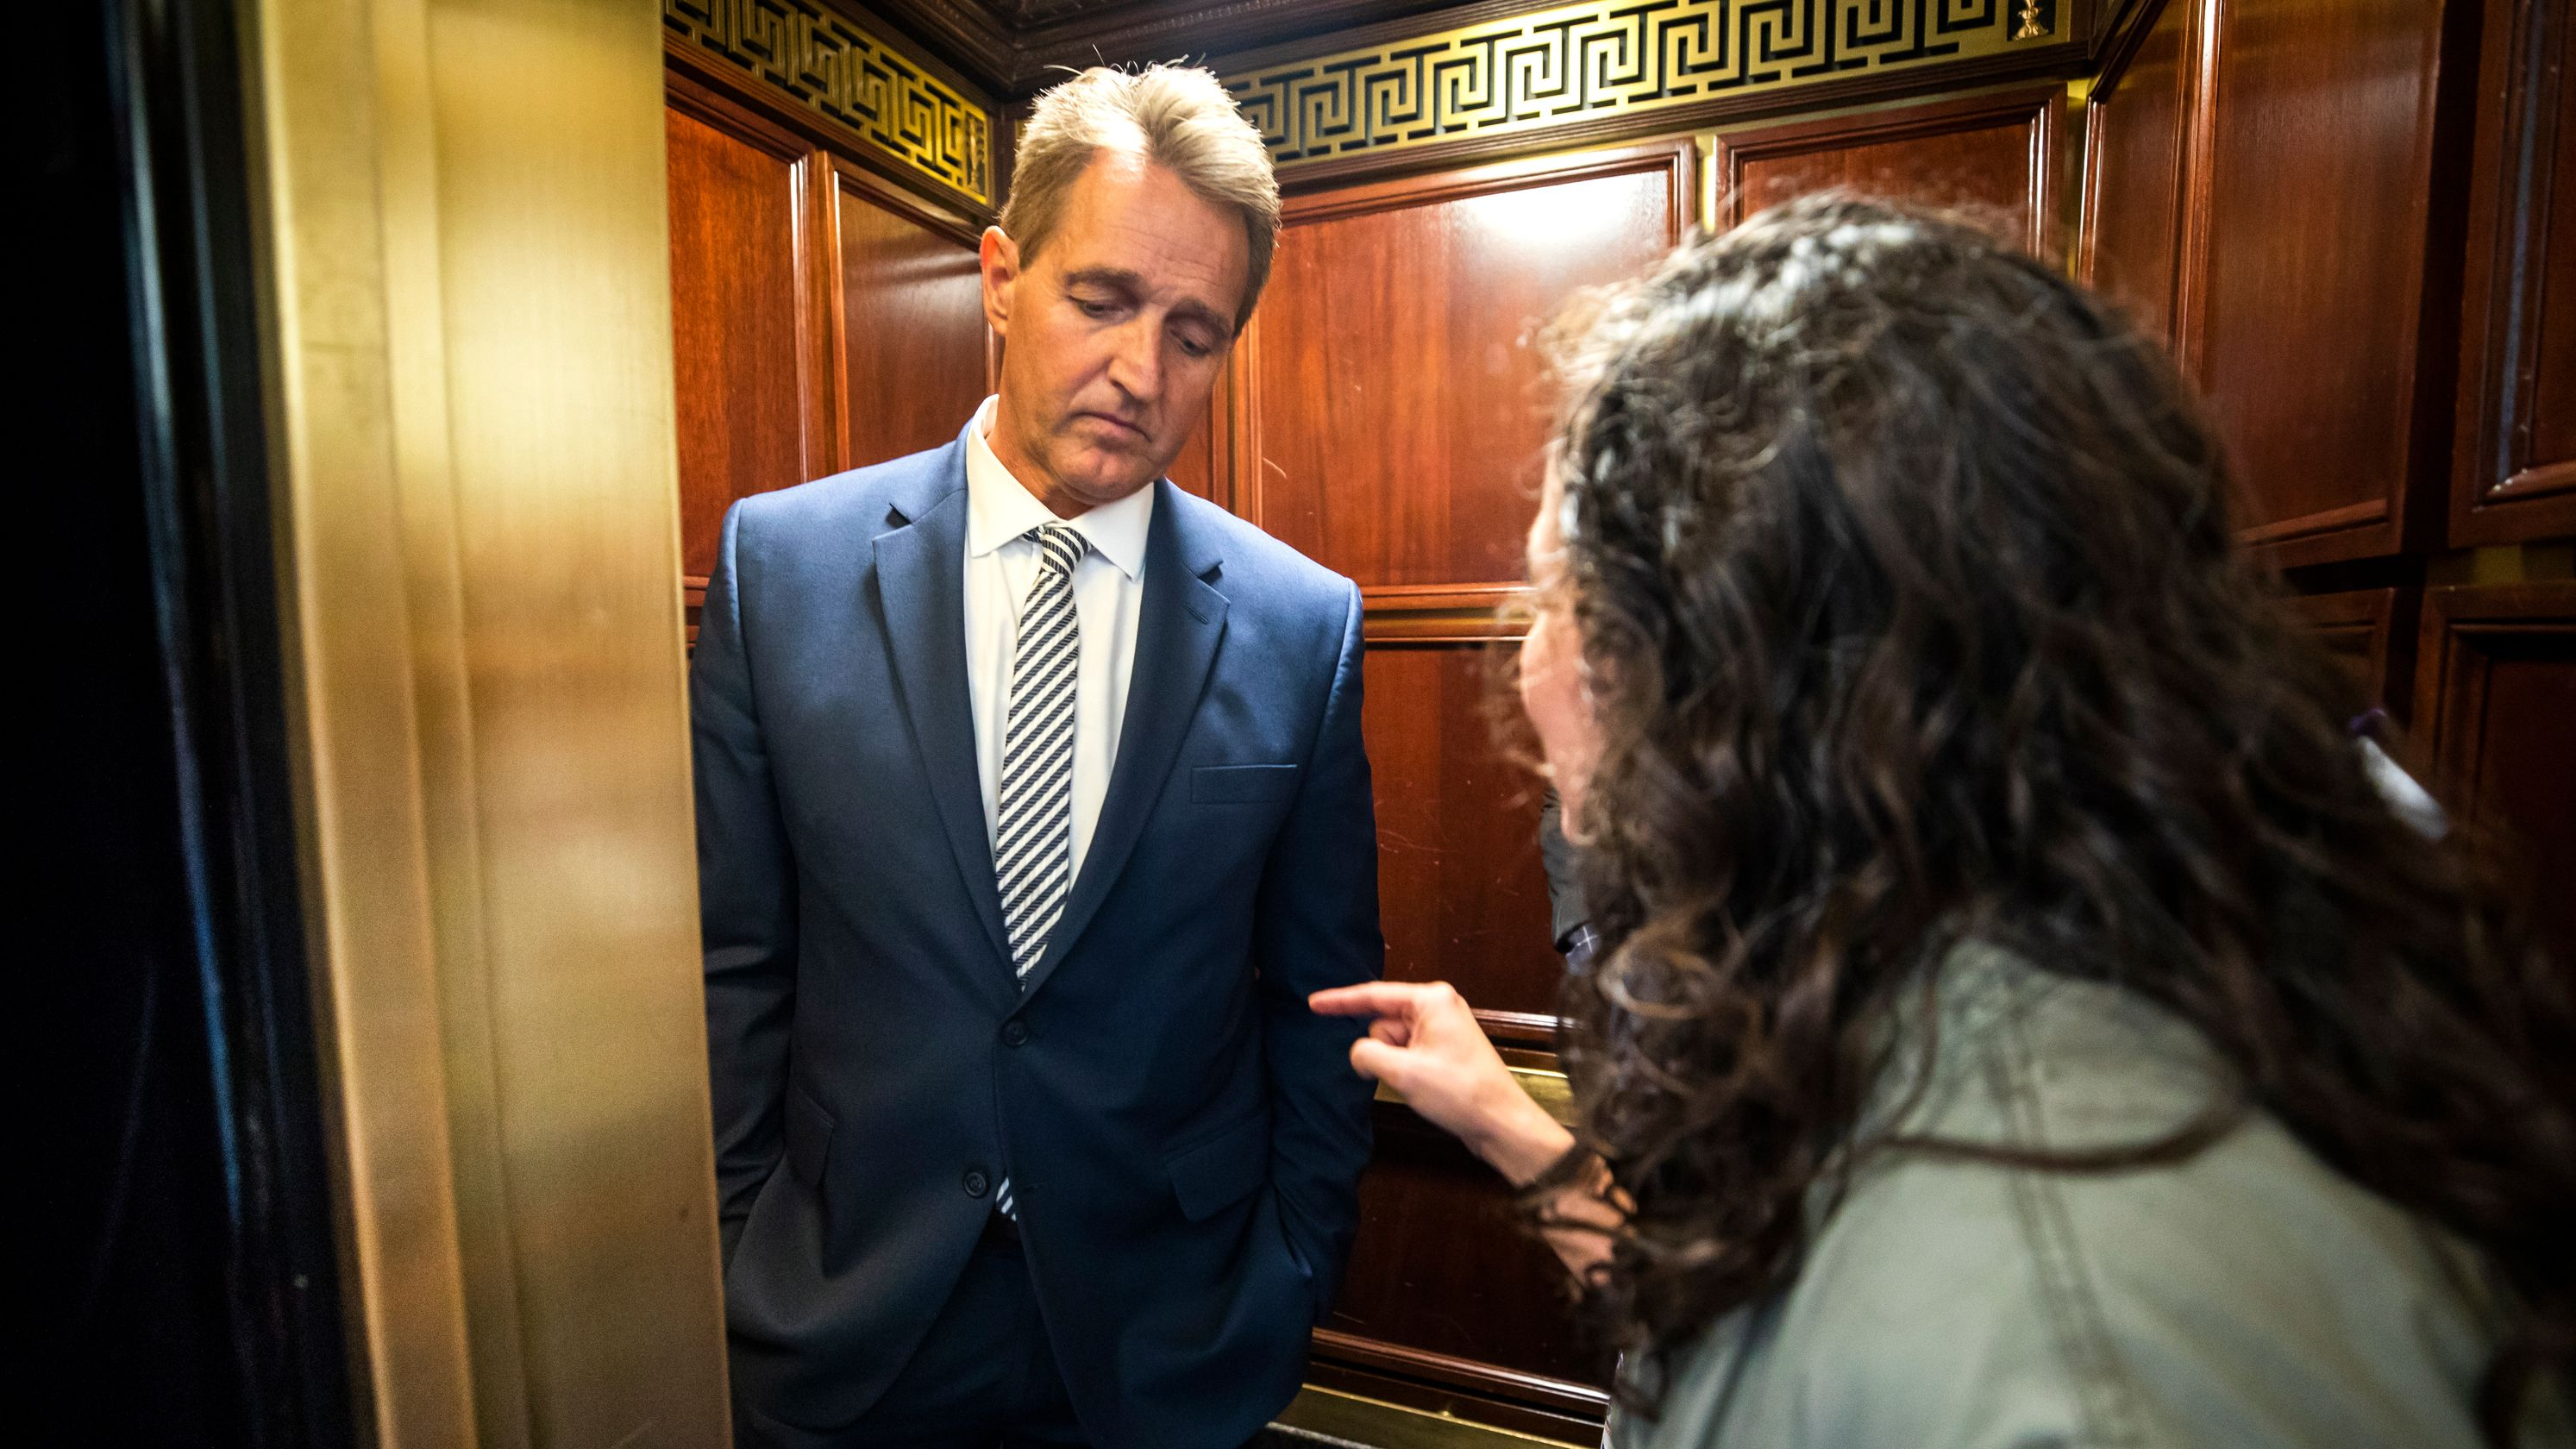 Jeff Flake confronted by #METOO protester